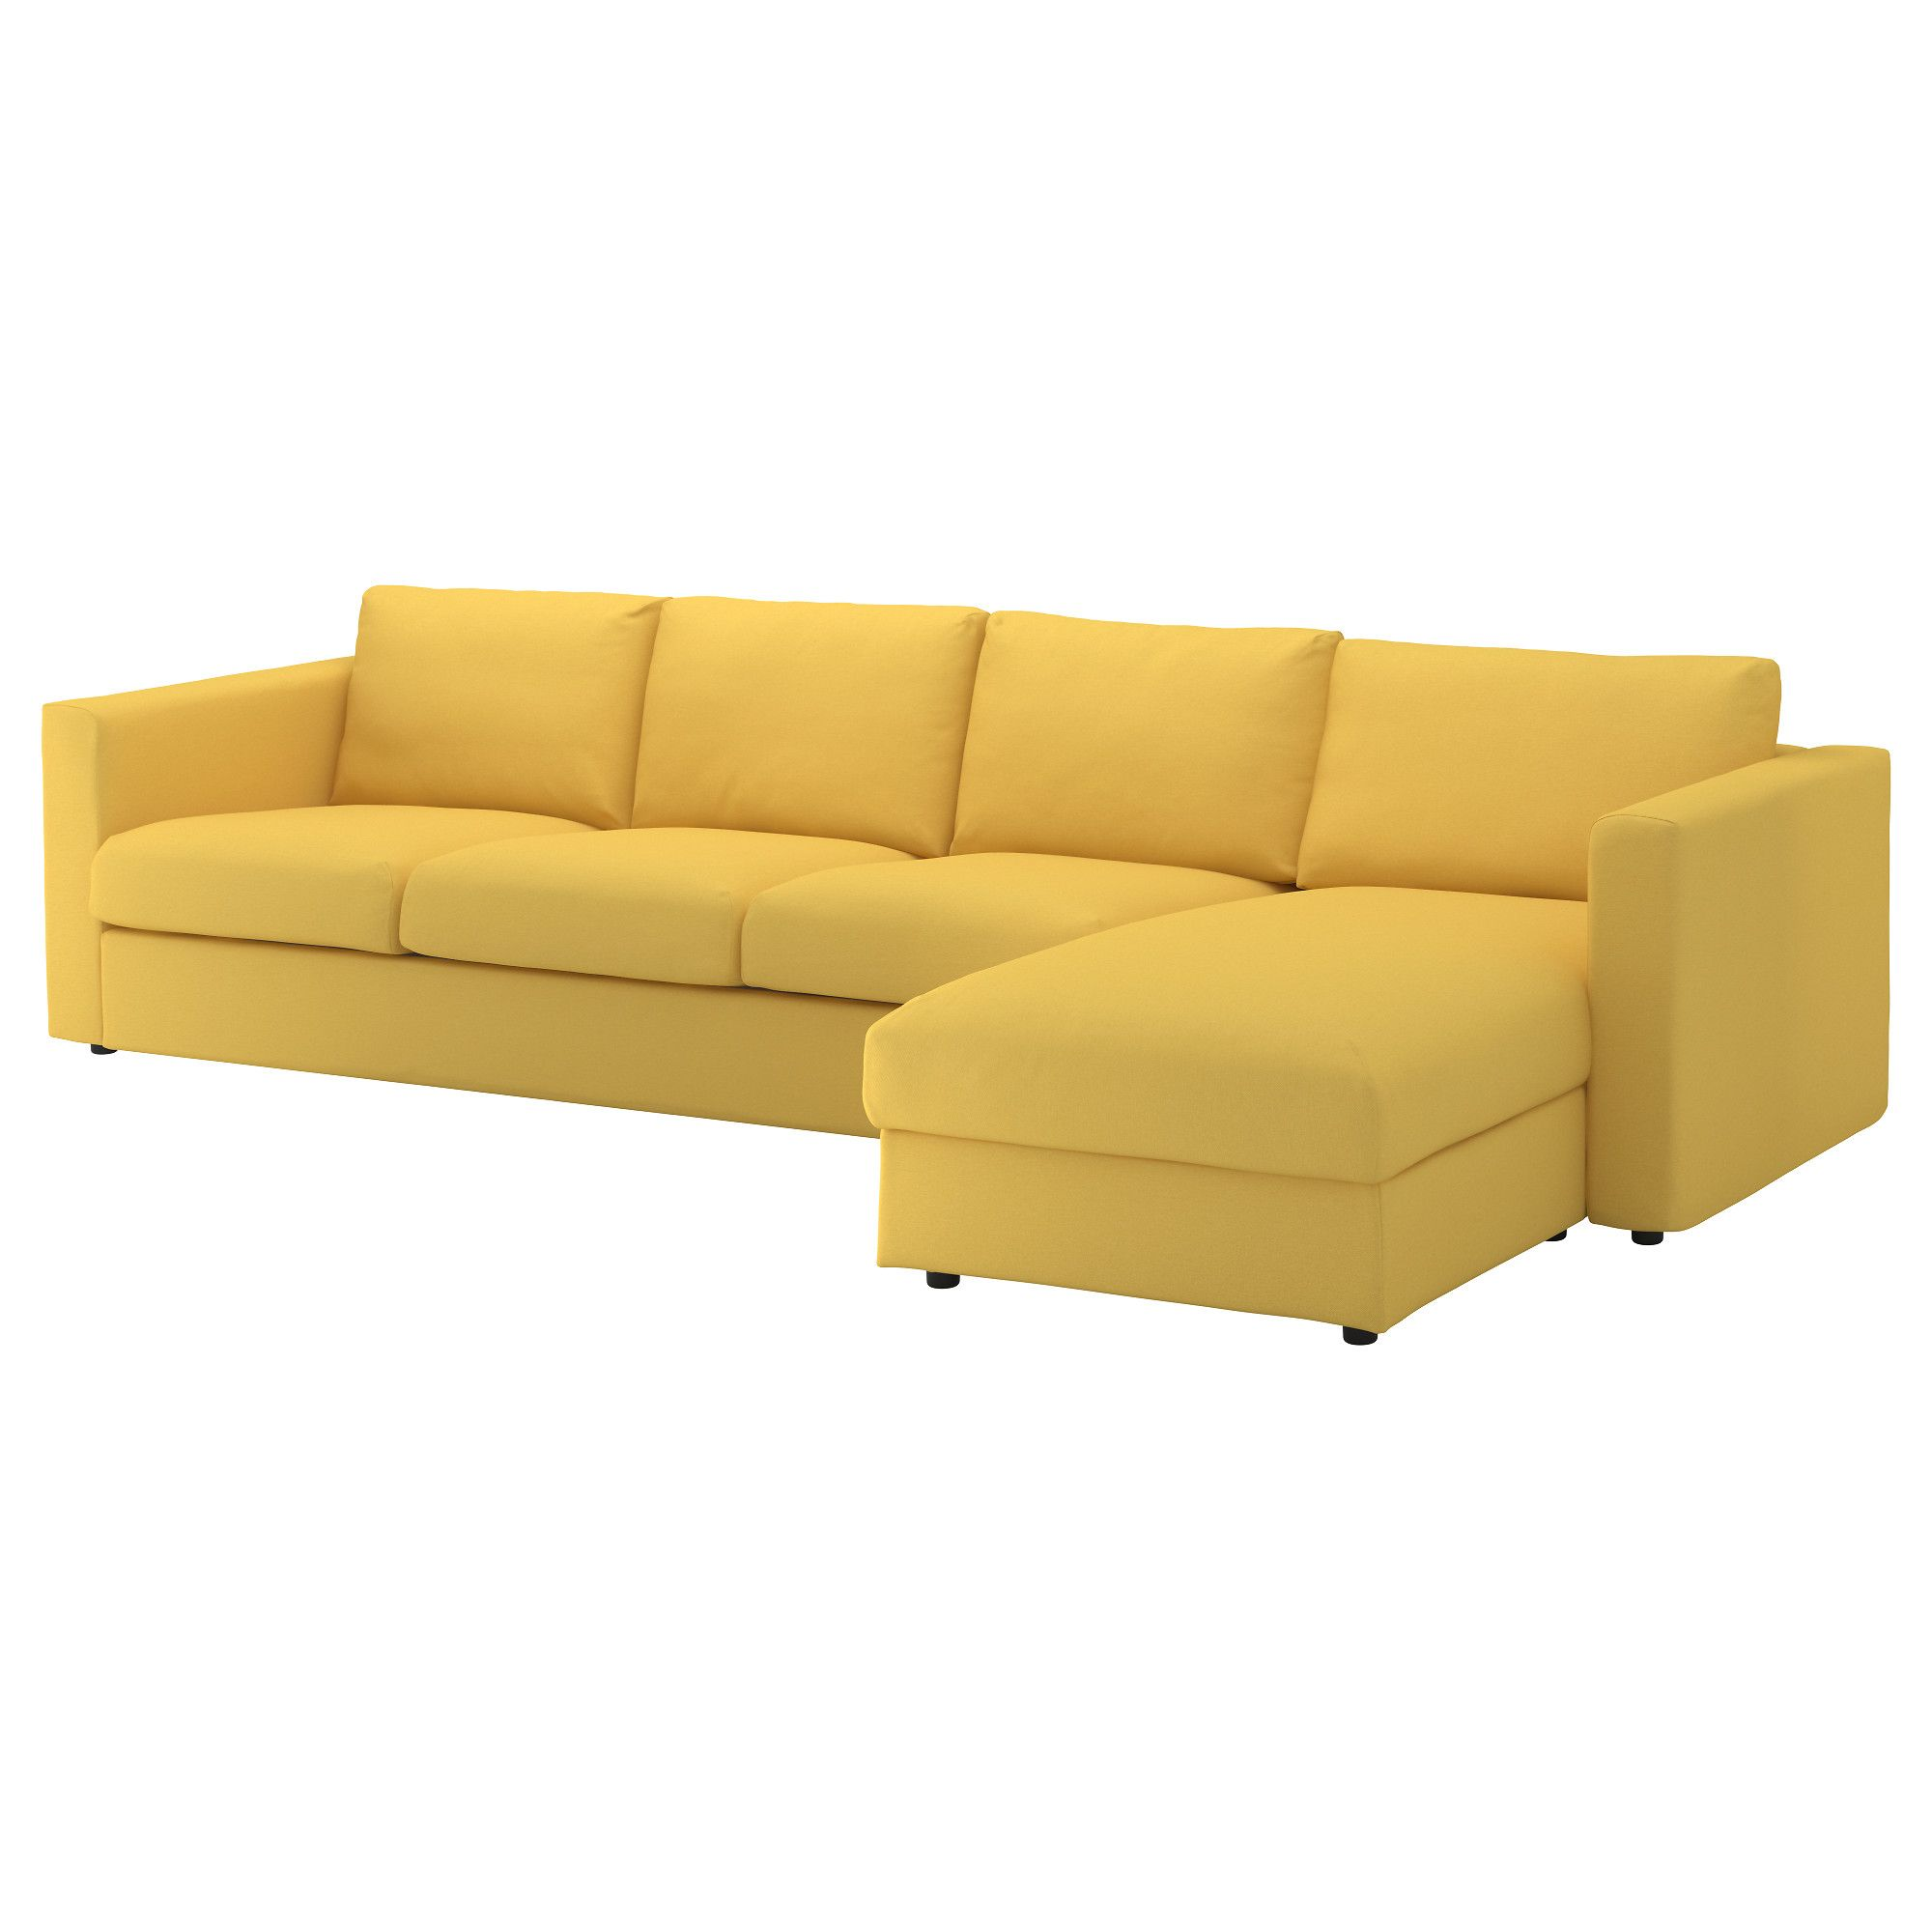 Orrsta Golden Yellow: VIMLE Sectional, 4-seat With Chaise, Orrsta Golden